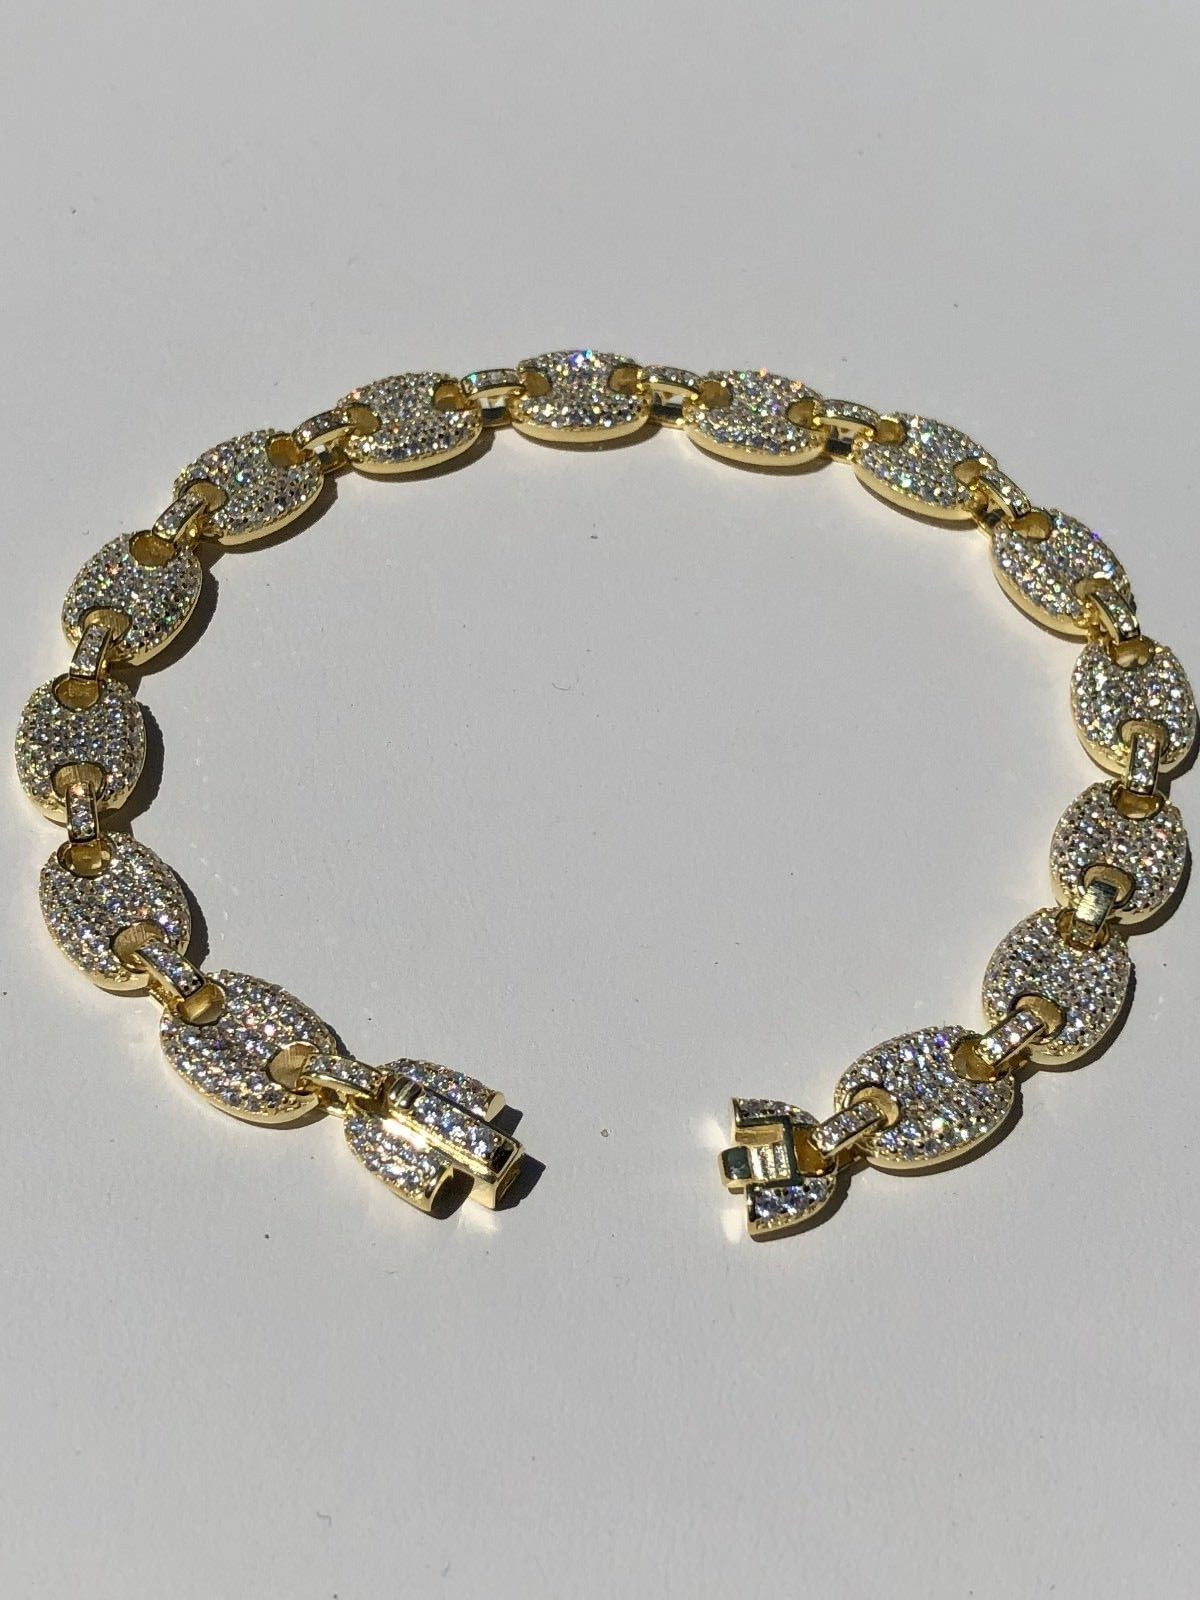 807b4dc9150fd 8mm Gucci Link Bracelet 14k Gold Over Solid 925 Sterling Silver Diamond ICY